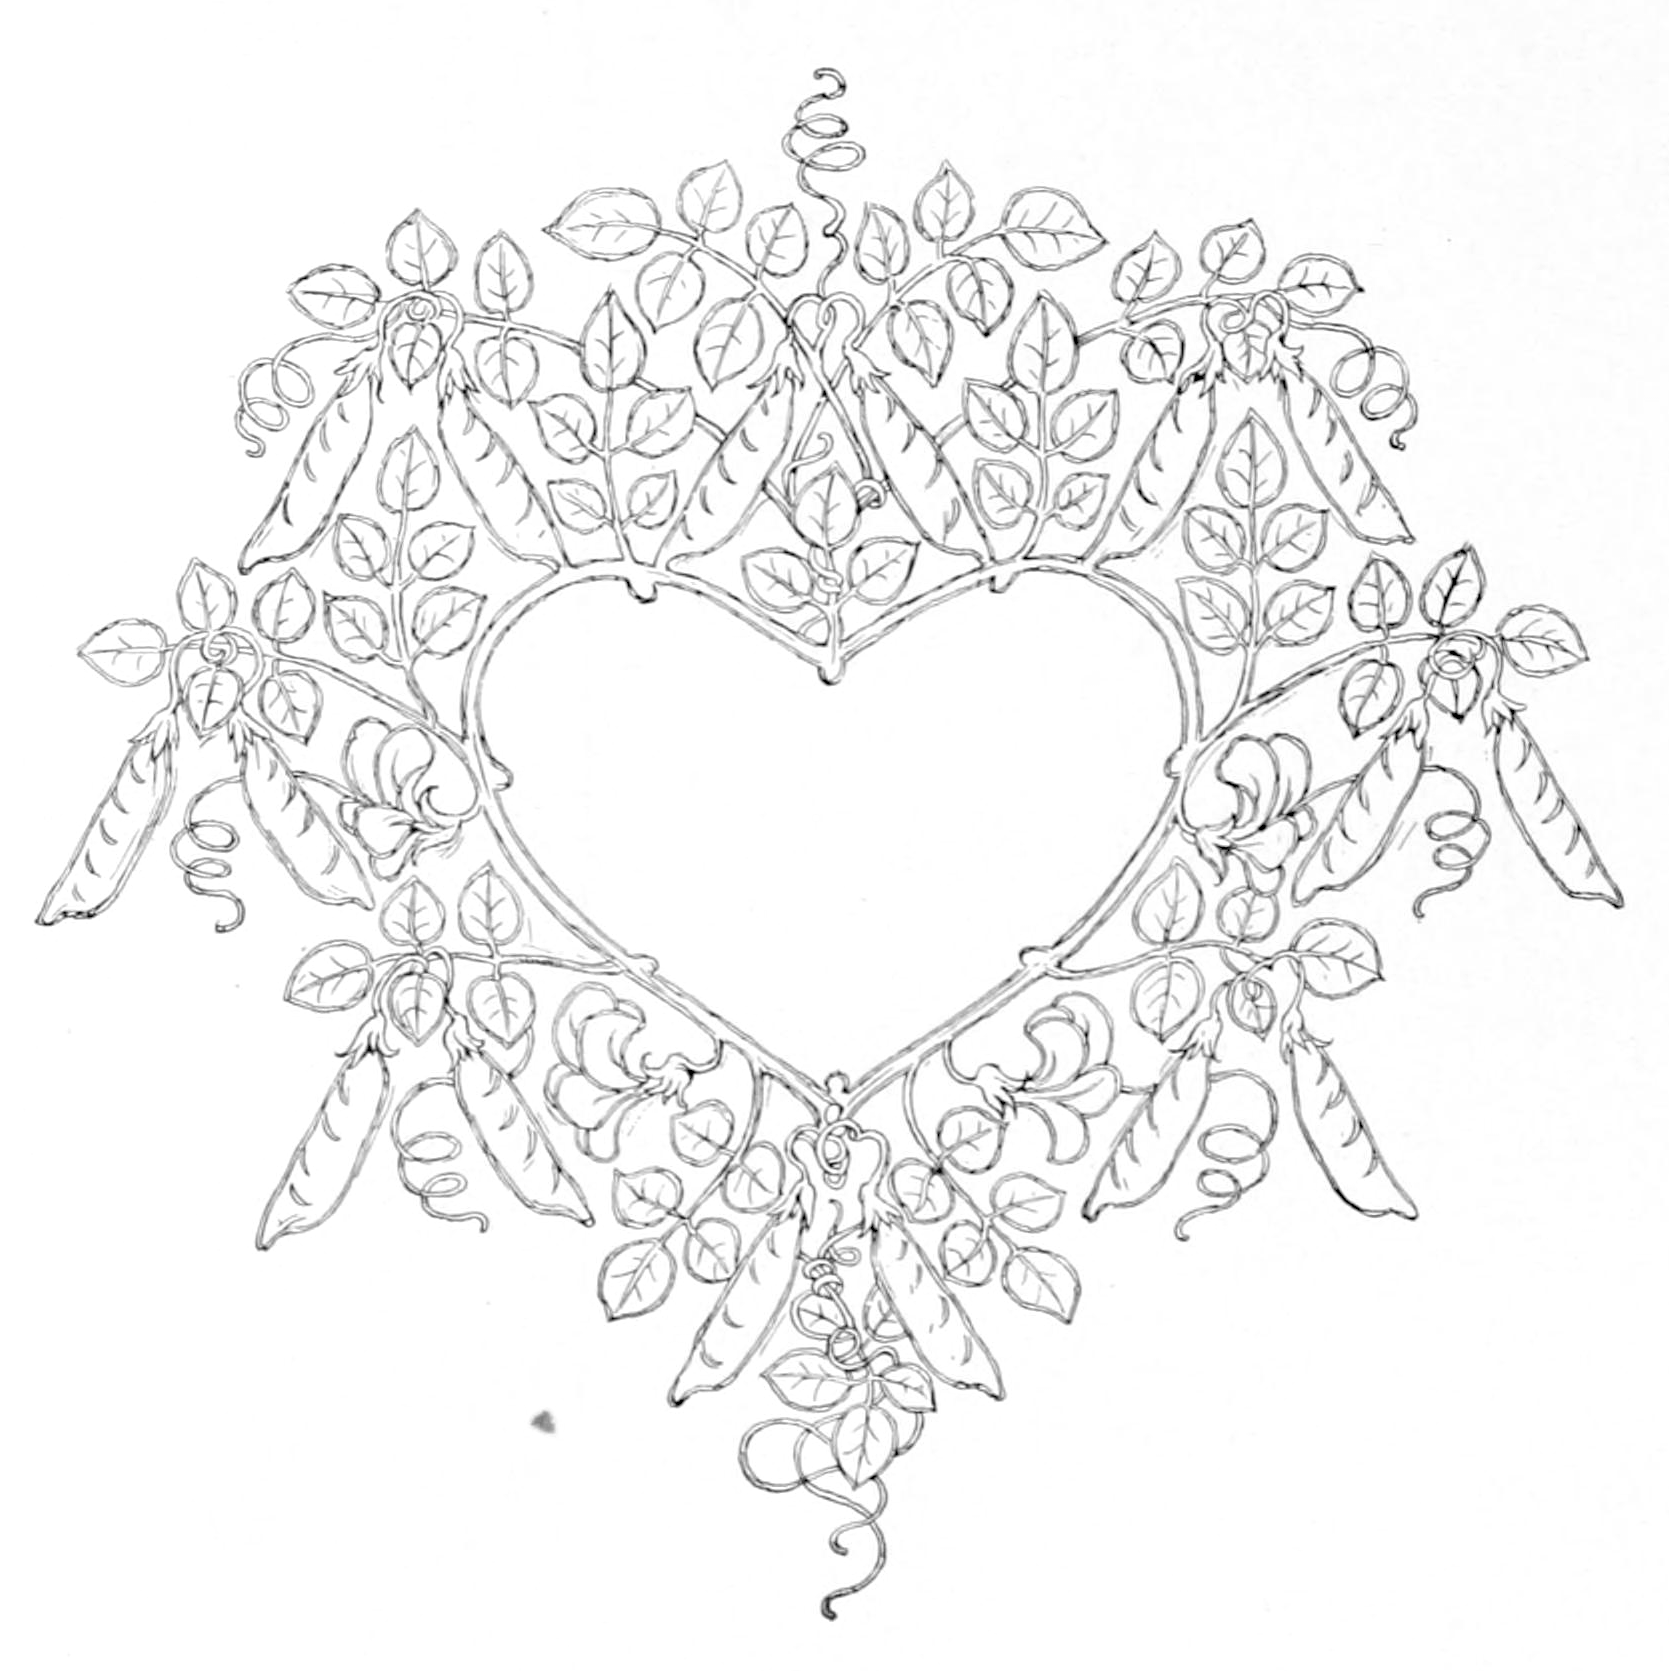 Coloring Pages For Adults Hearts : File:Page 522 of Fairy tales and stories (Andersen, Tegner).png Wikimedia Commons